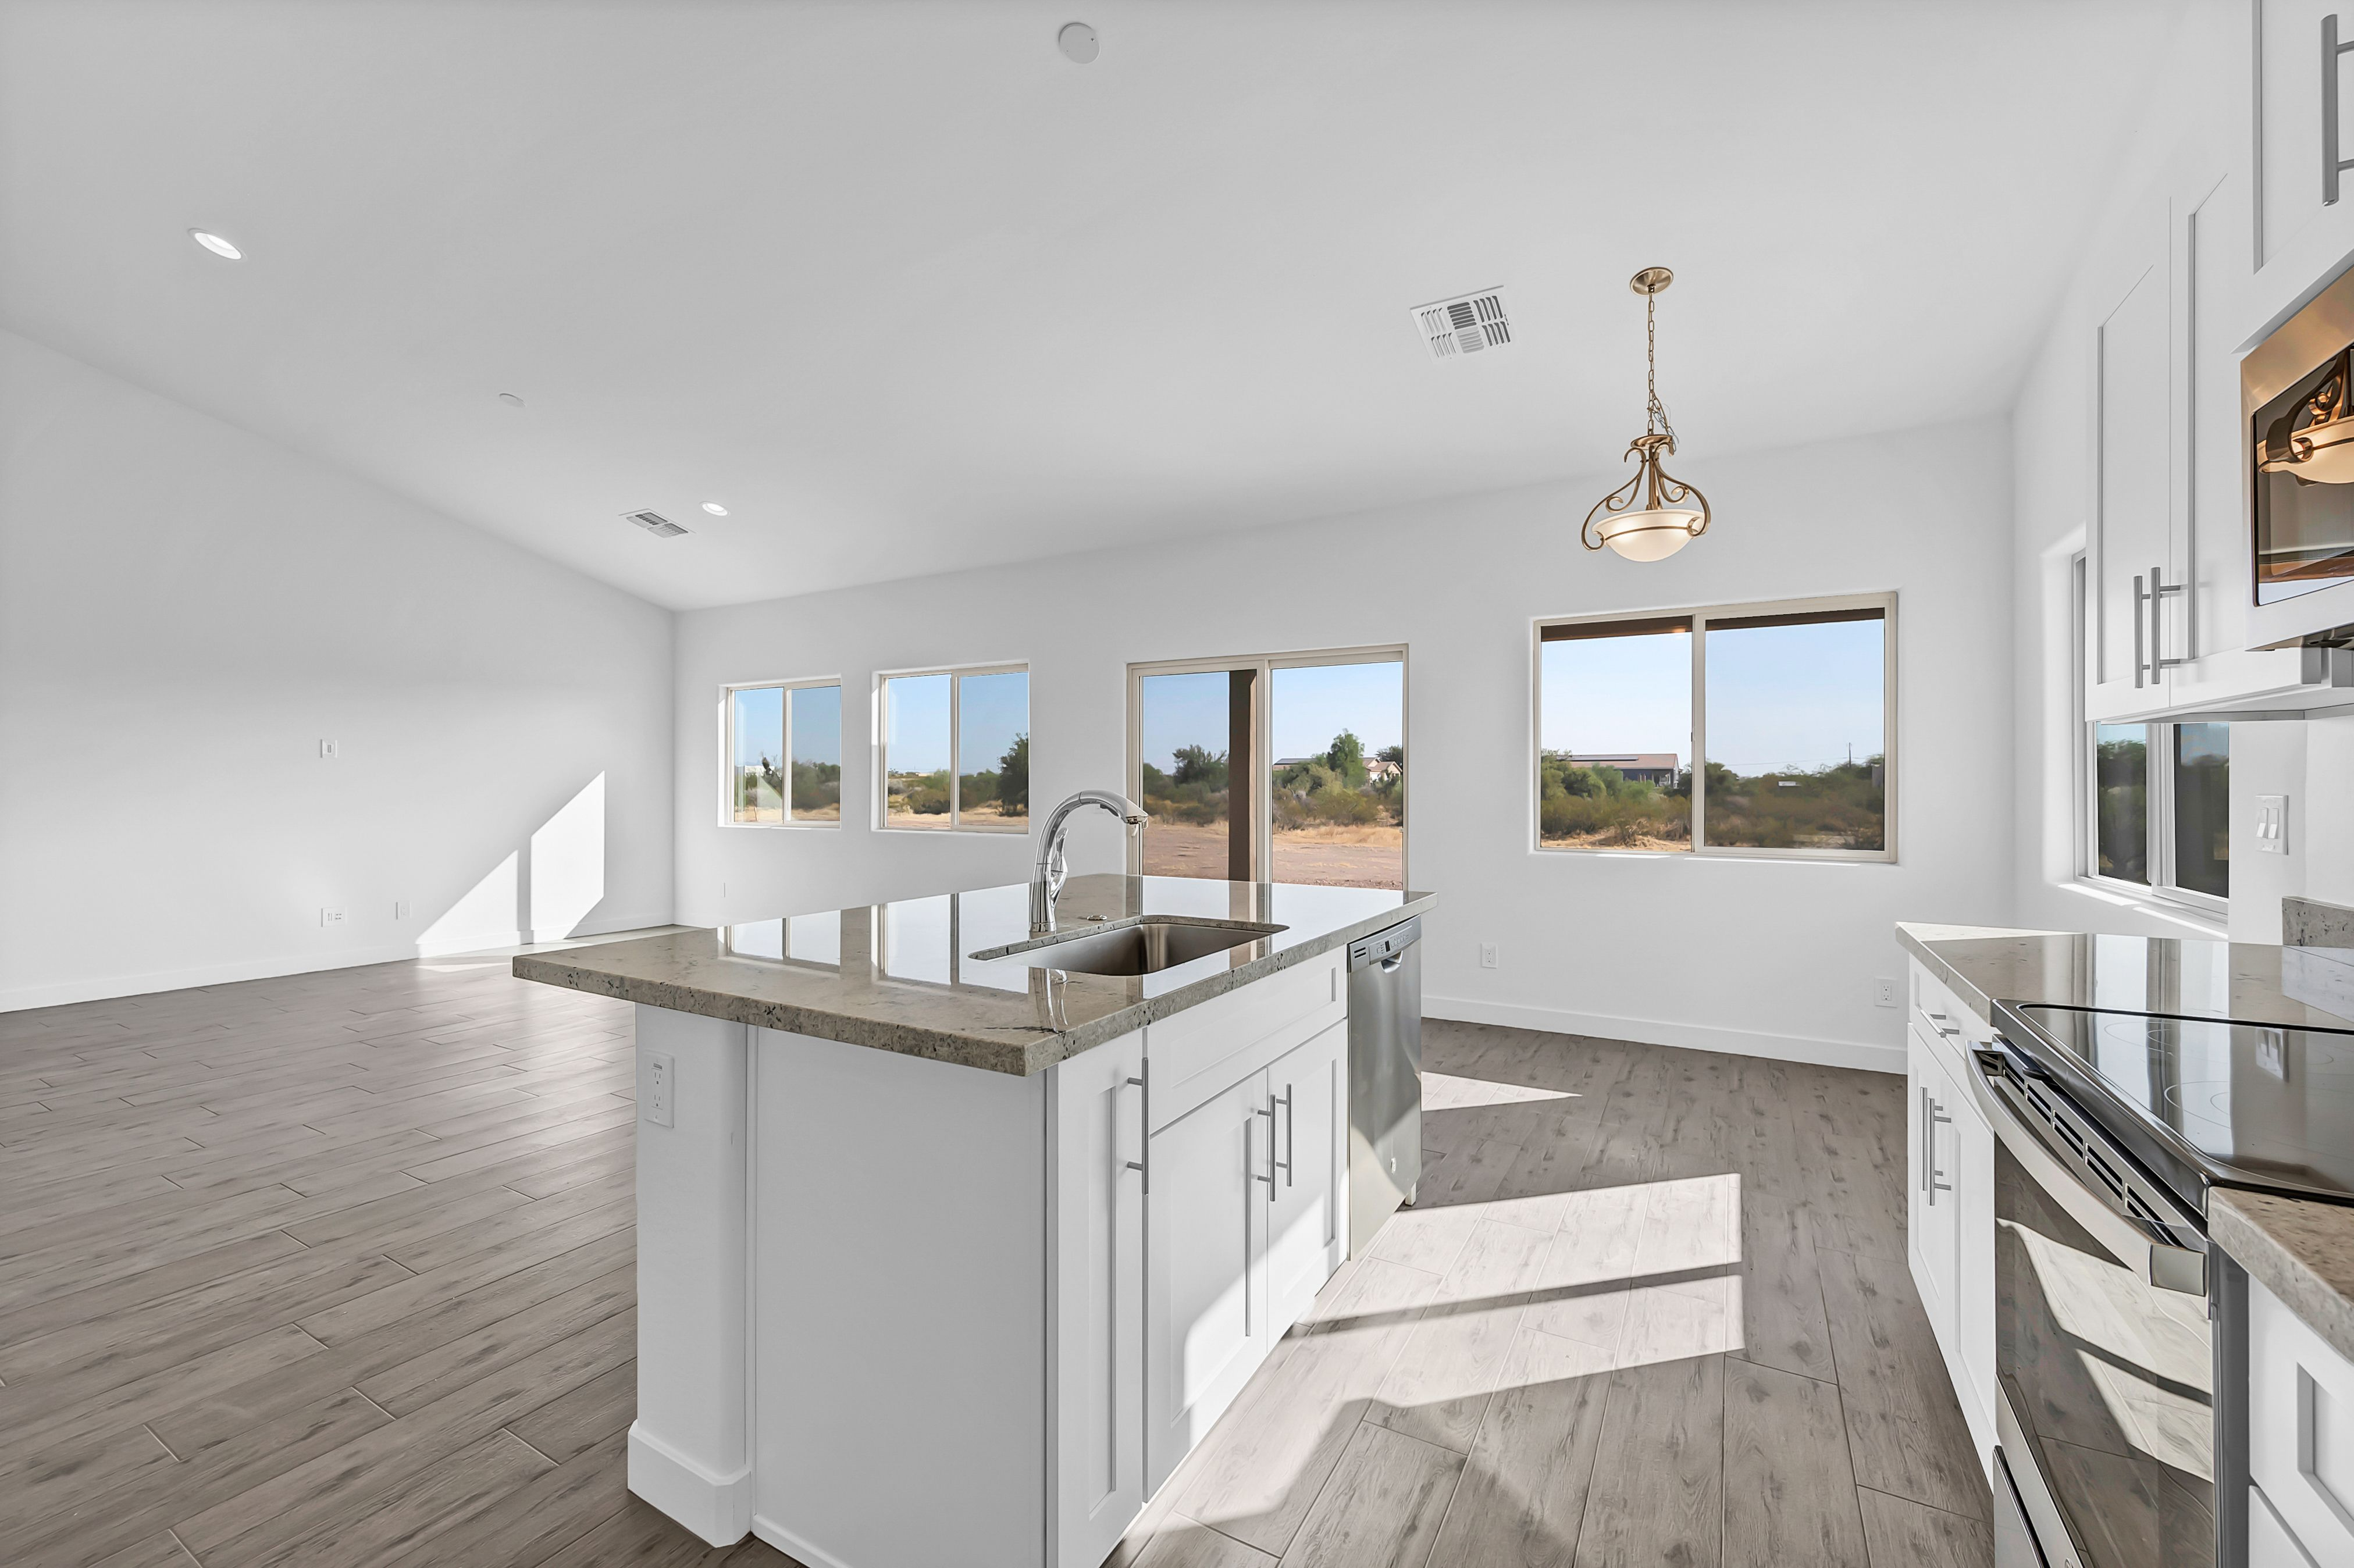 Kitchen featured in The Cholla Build on Your Lot By Morgan Taylor Homes in Phoenix-Mesa, AZ